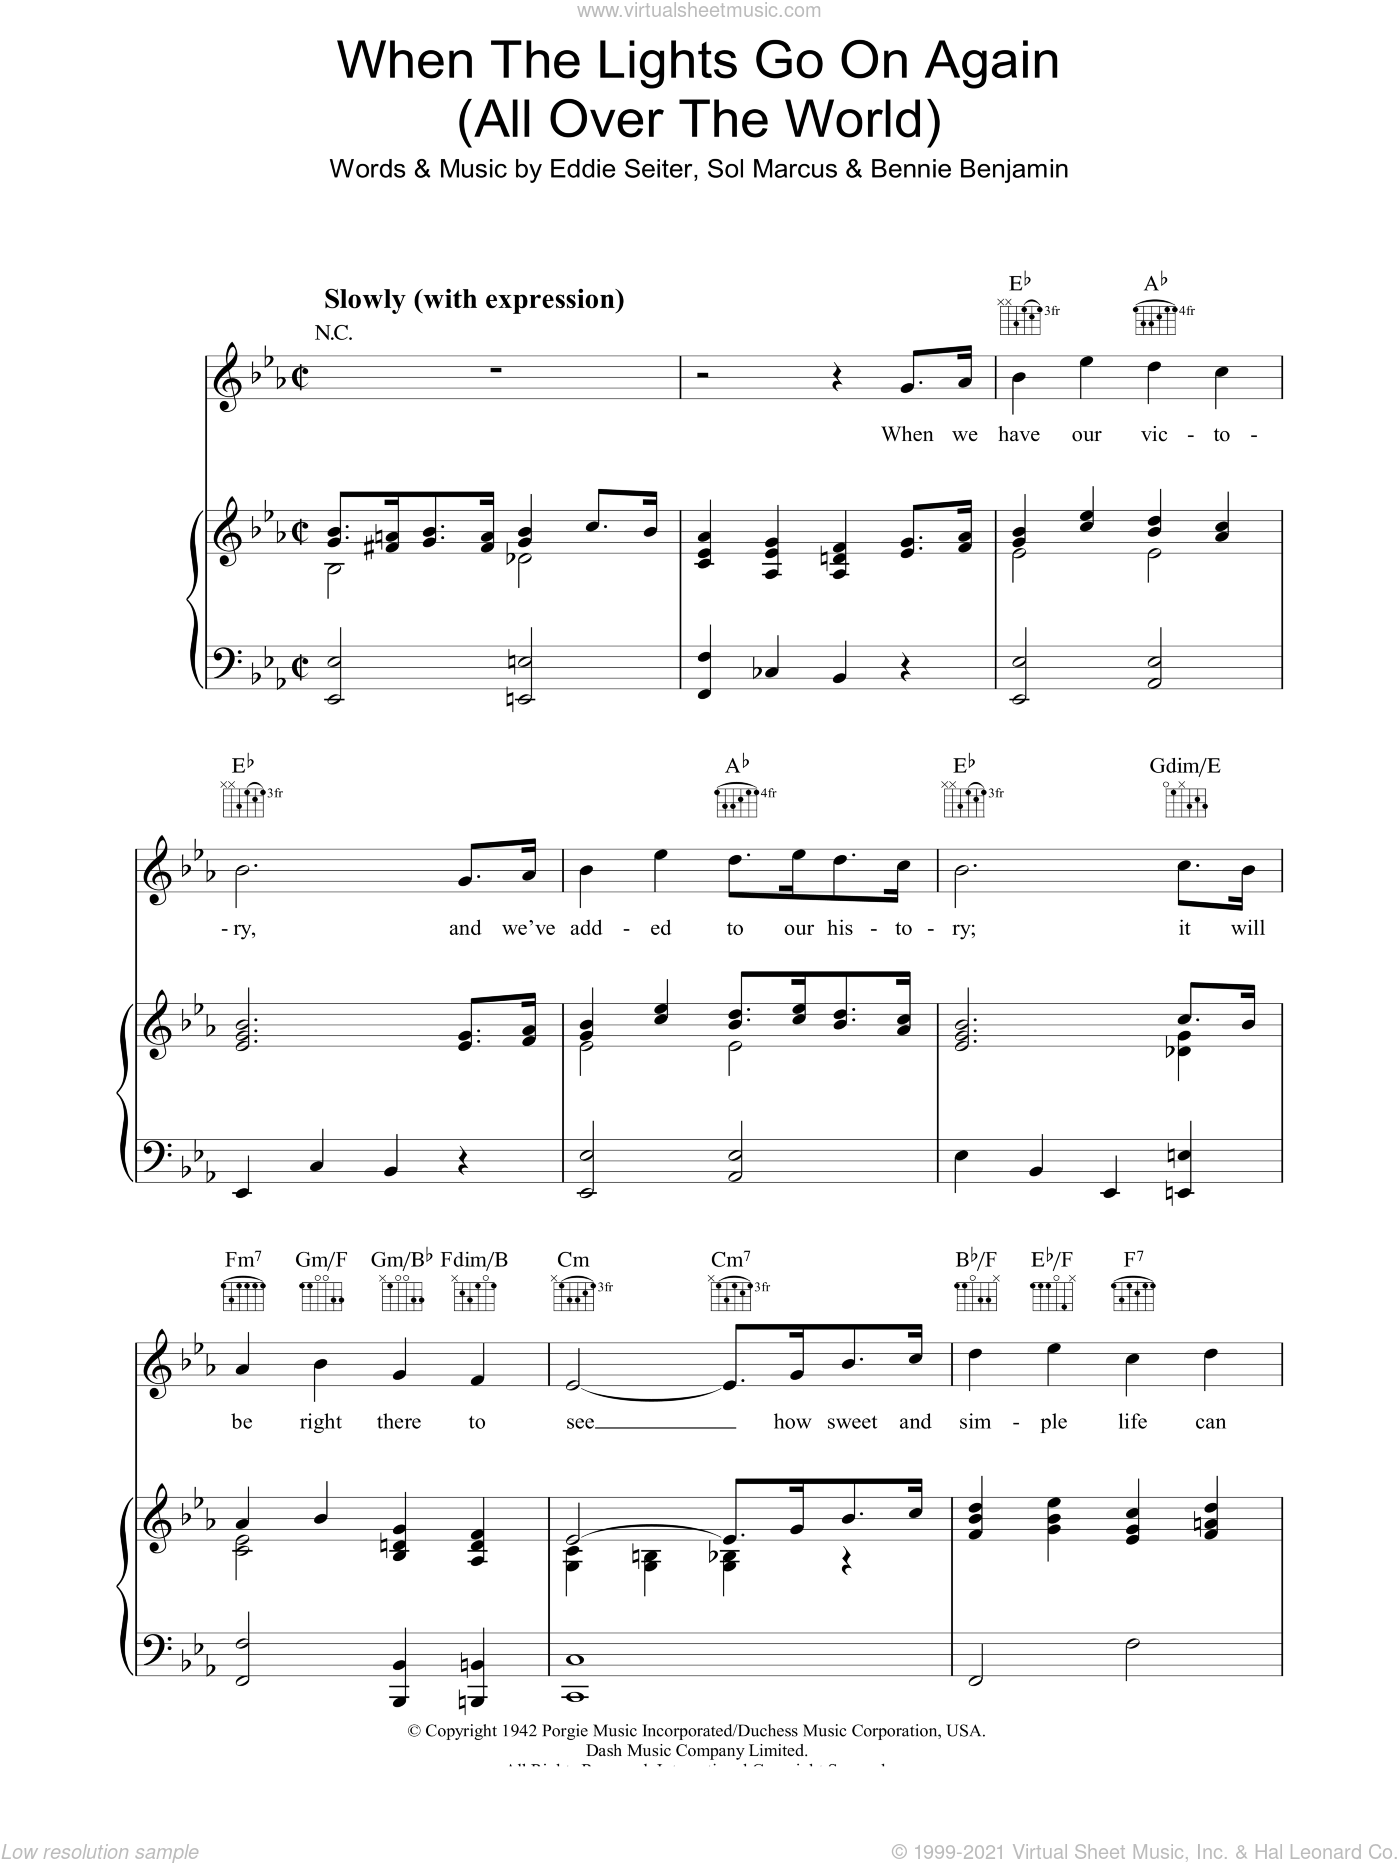 When The Lights Go On Again (All Over The World) sheet music for voice, piano or guitar by Sol Marcus